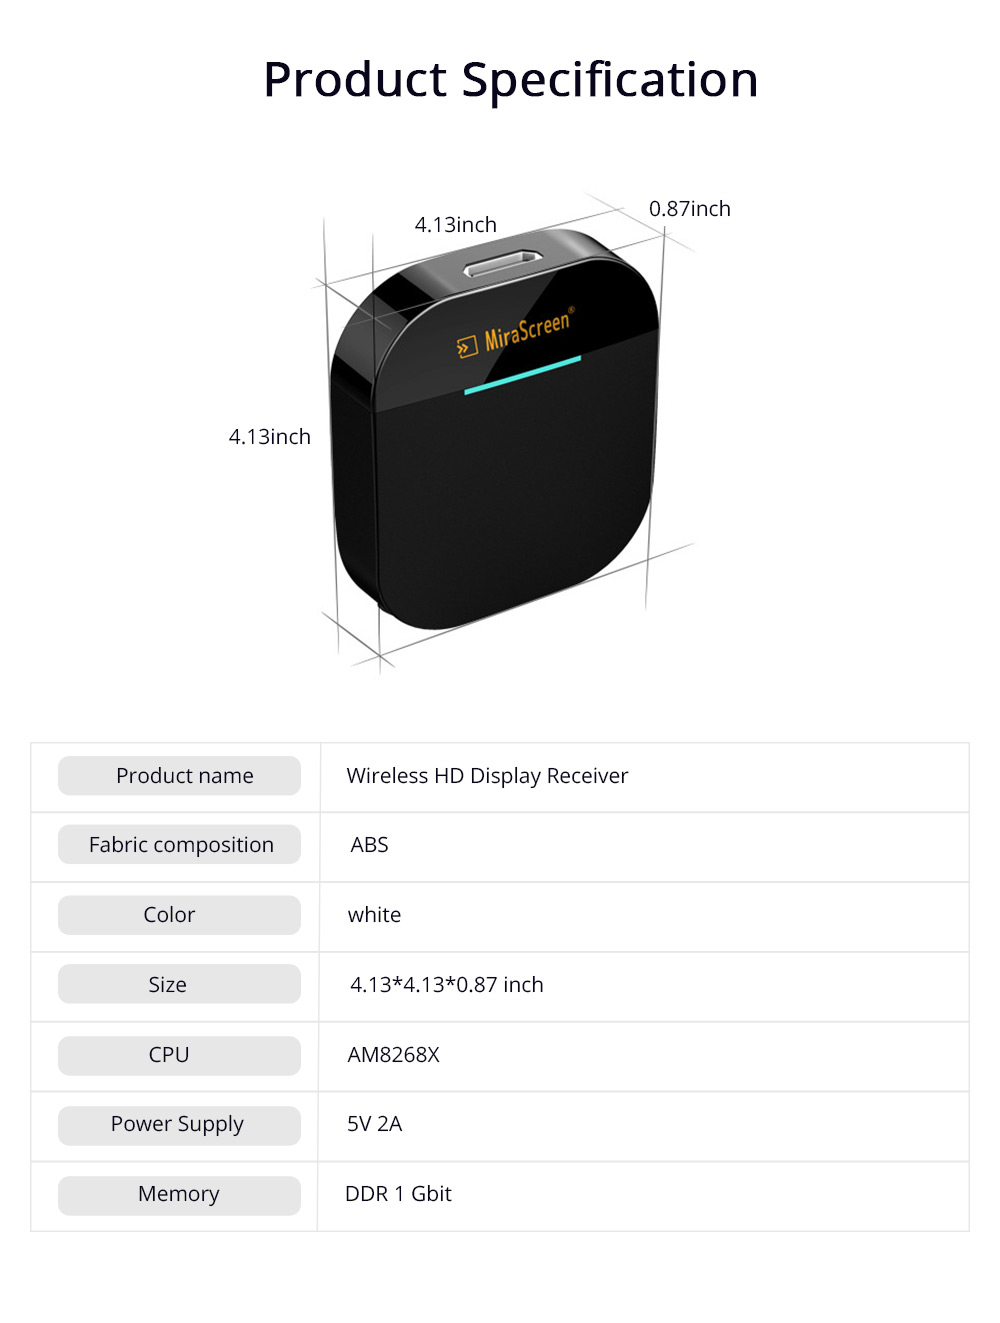 Wireless HD Projector Display Mobile Phone Connected TV Artifact Screen Saver Projector Converter Display Receiver 8